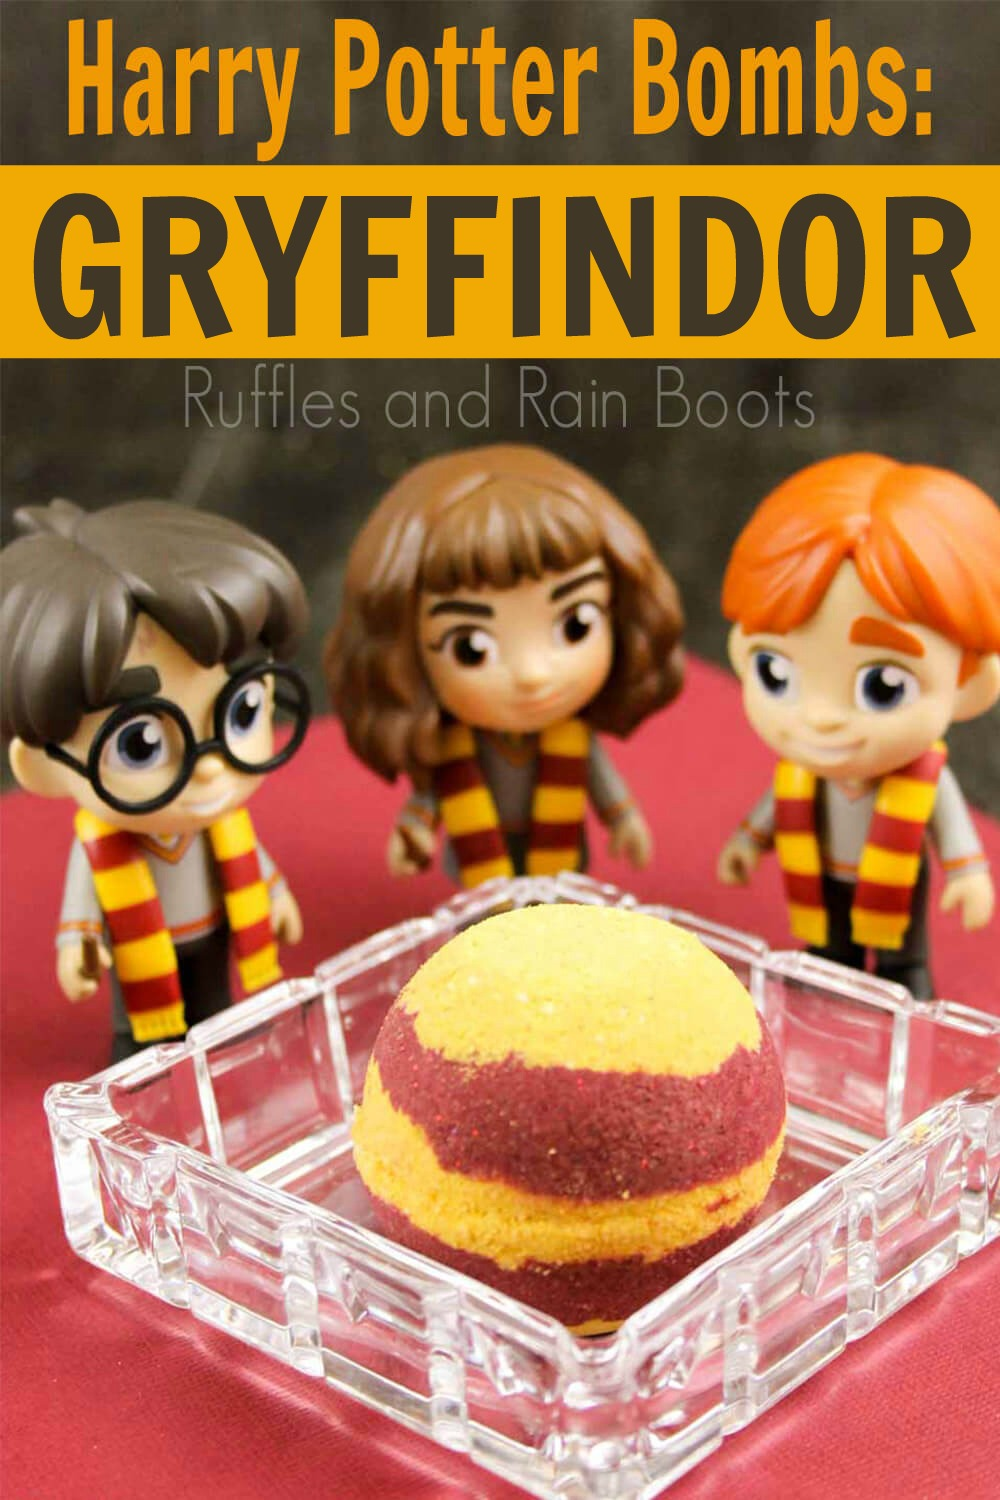 red and yellow striped Gryffindor harry potter bath bombs in glass dish with tiny harry potter figurines on red background